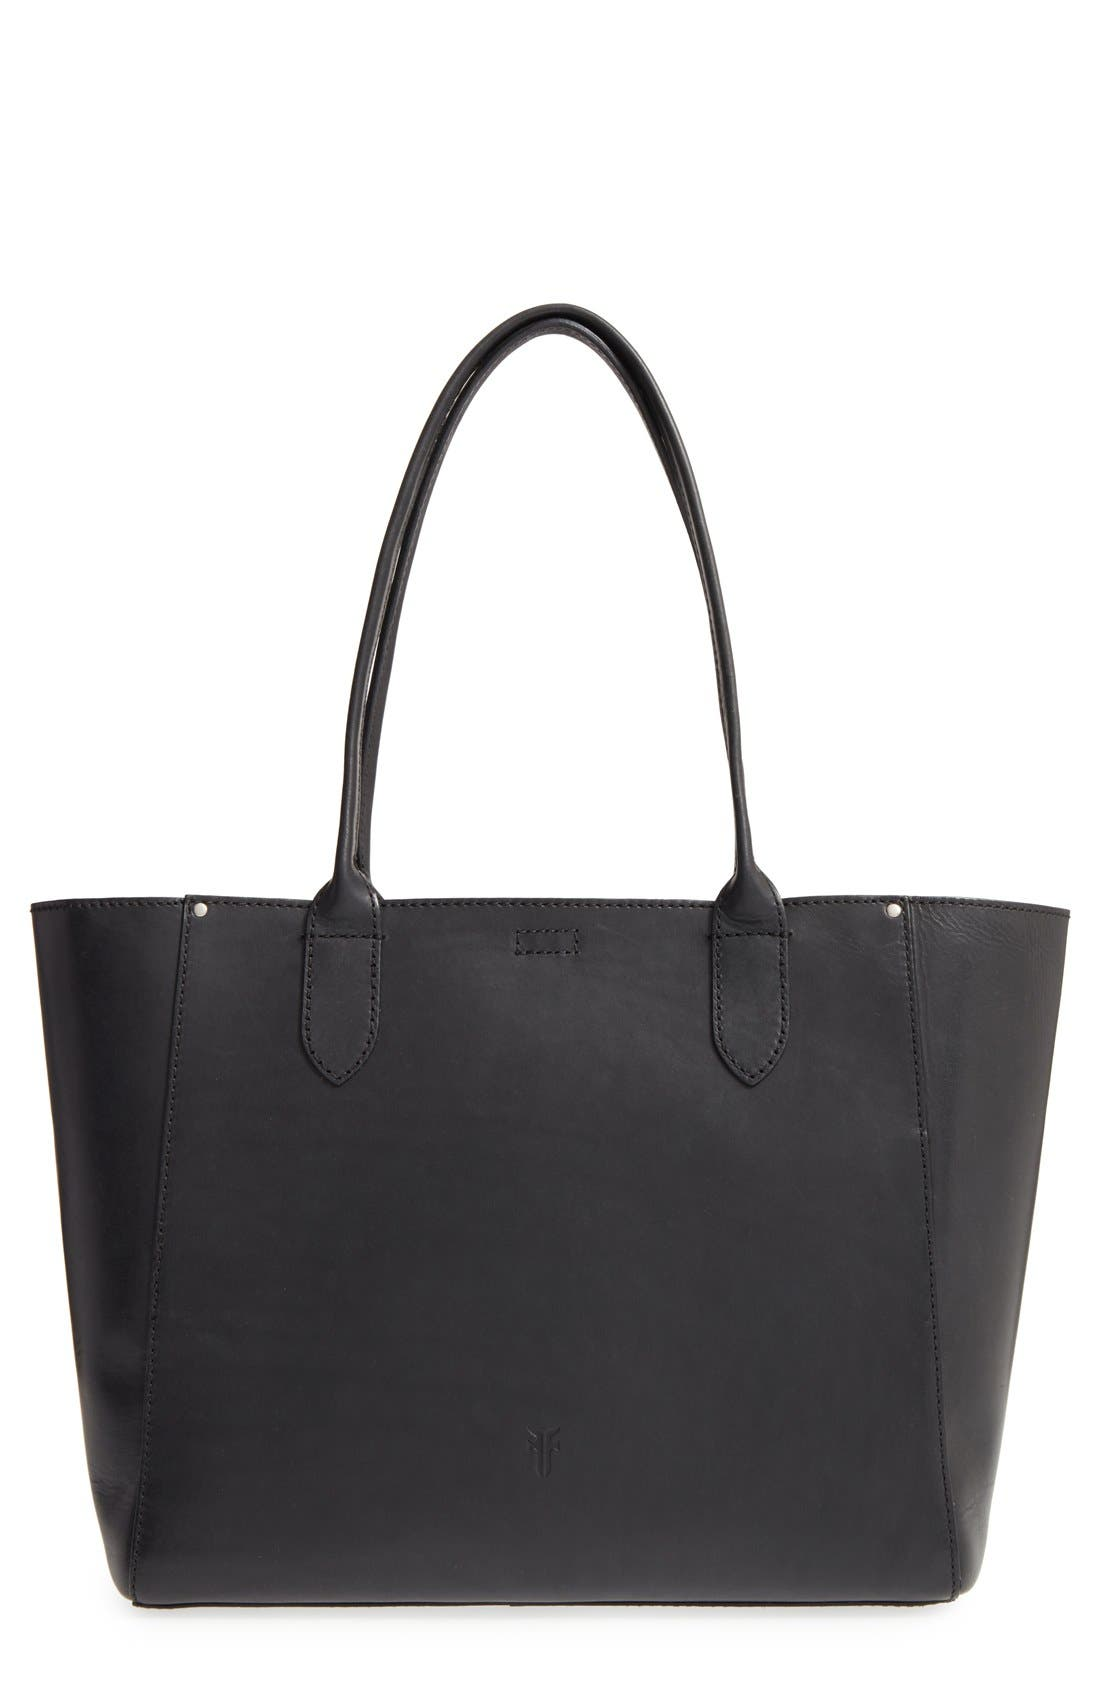 FRYE 'Casey' Leather Tote, Main, color, 001